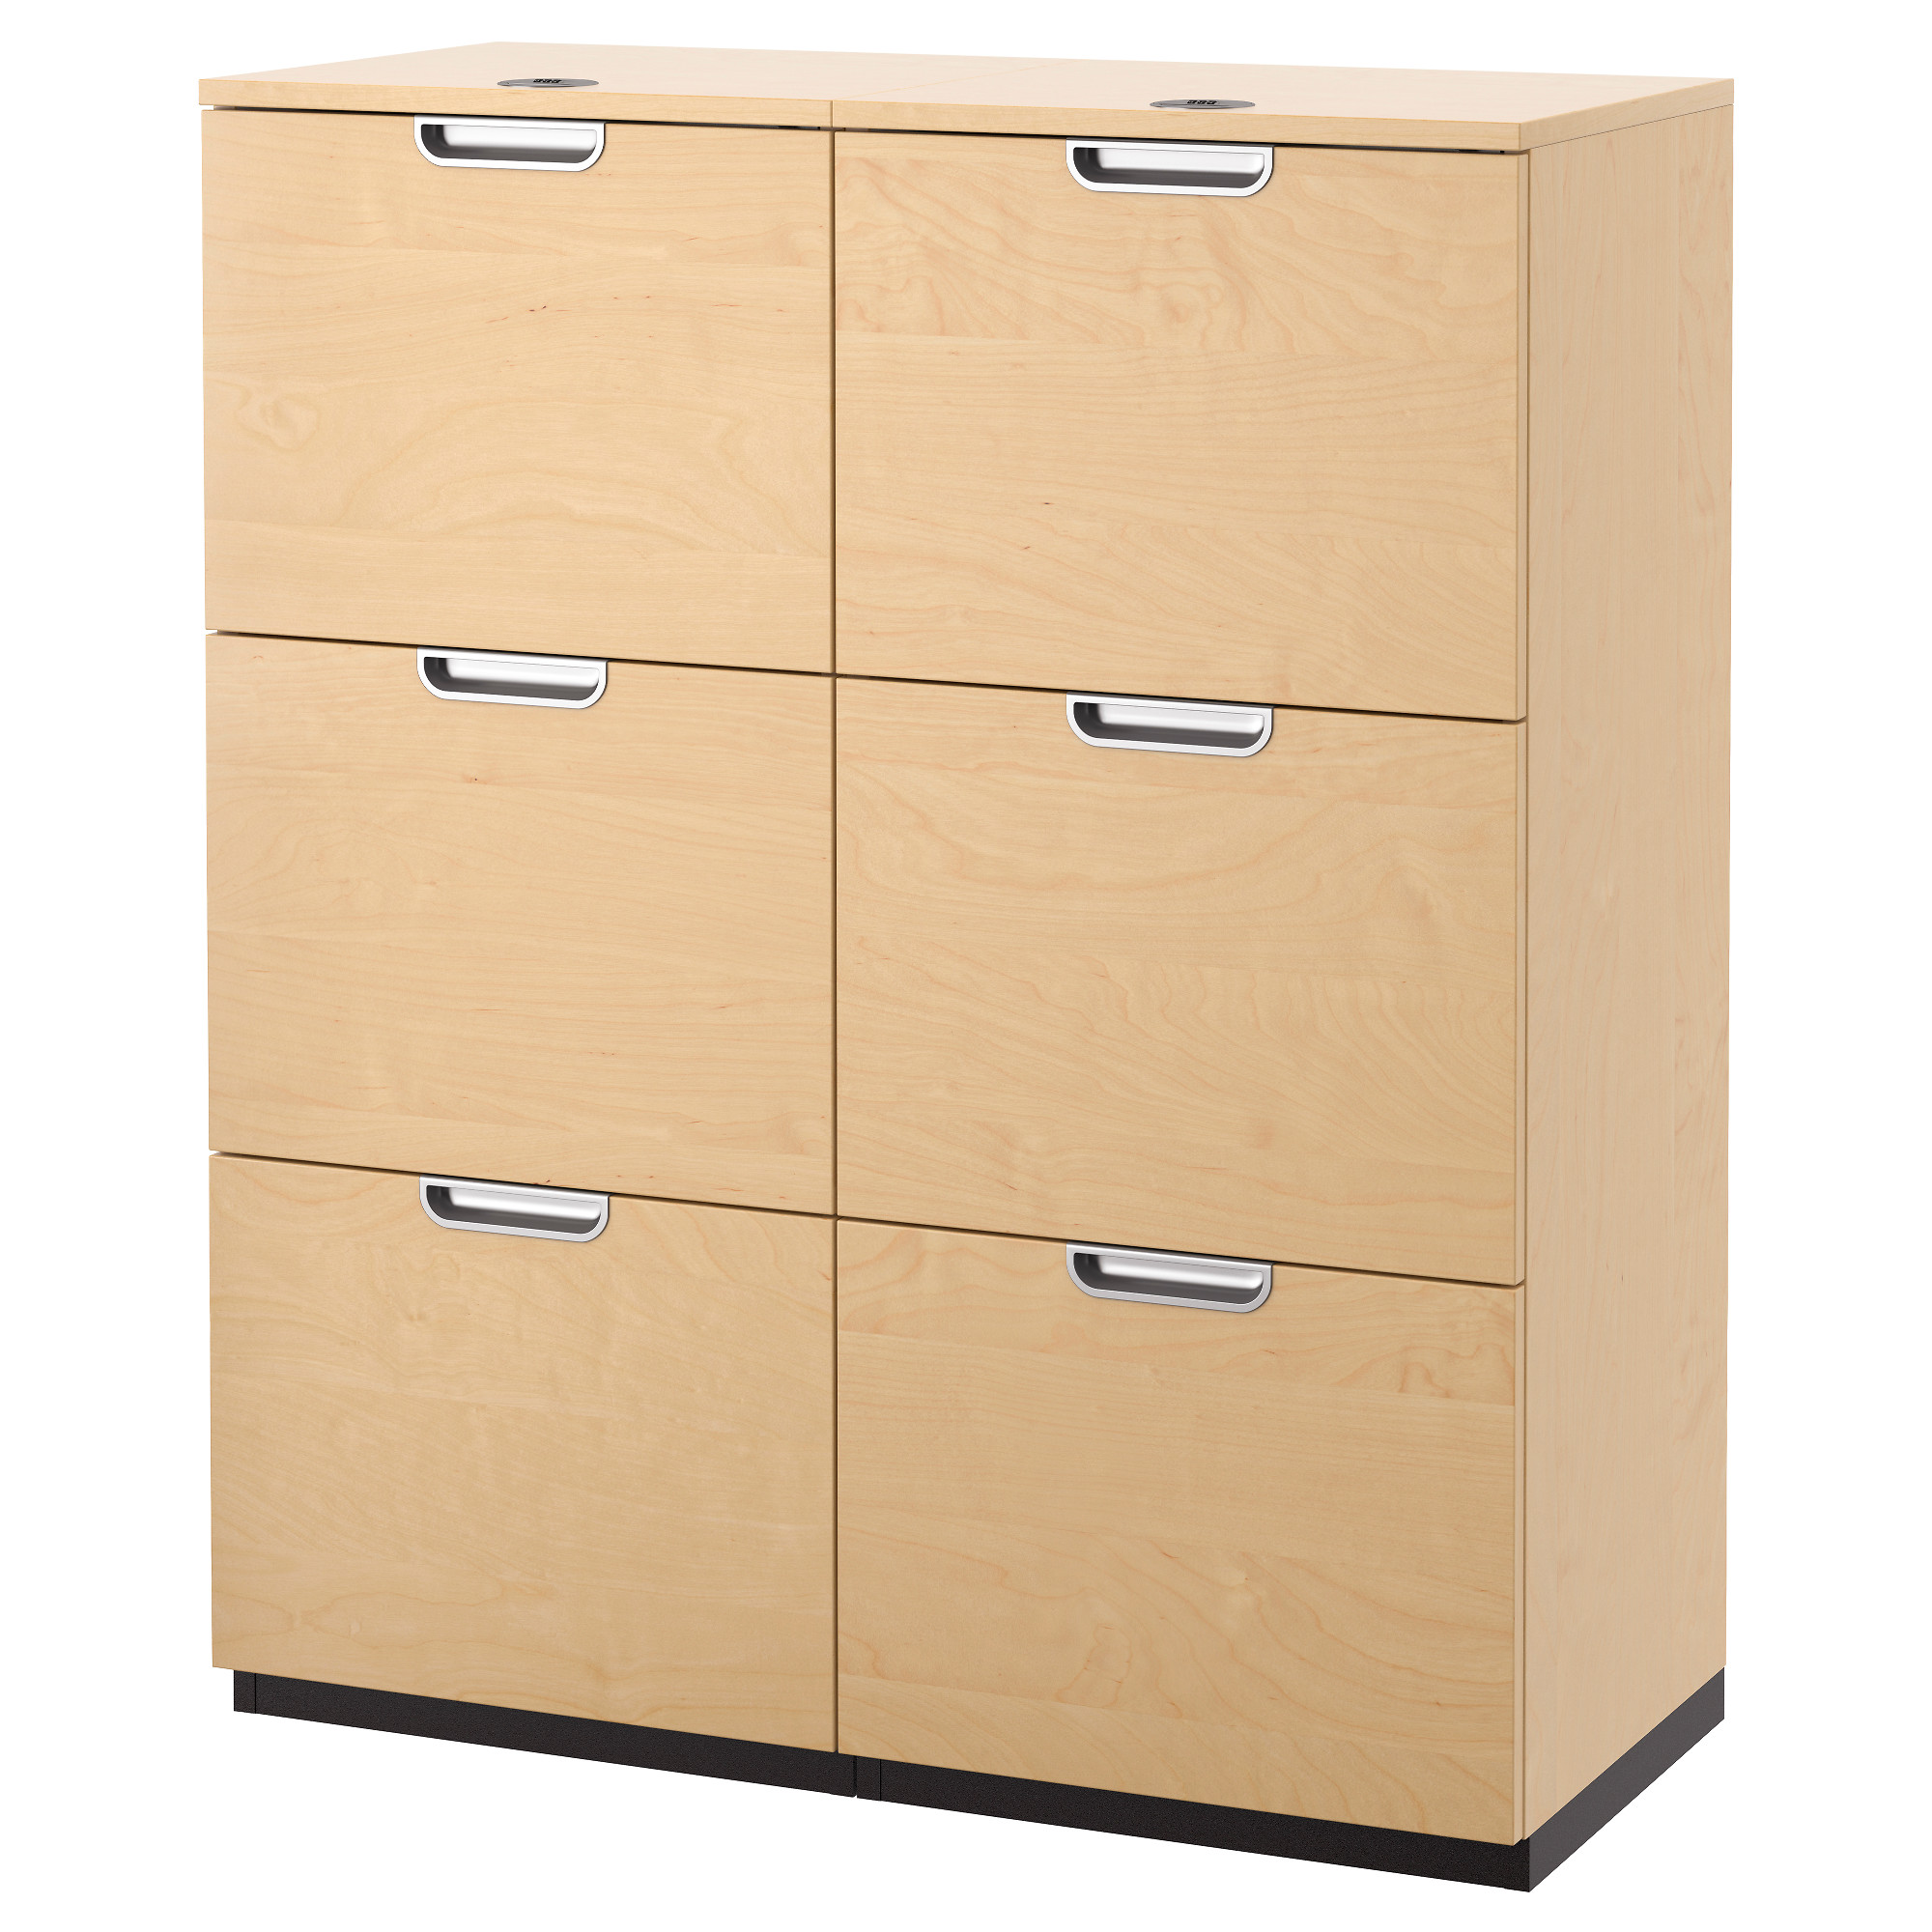 Filing Cabinets - Filing Cabinets for Home Office - IKEA